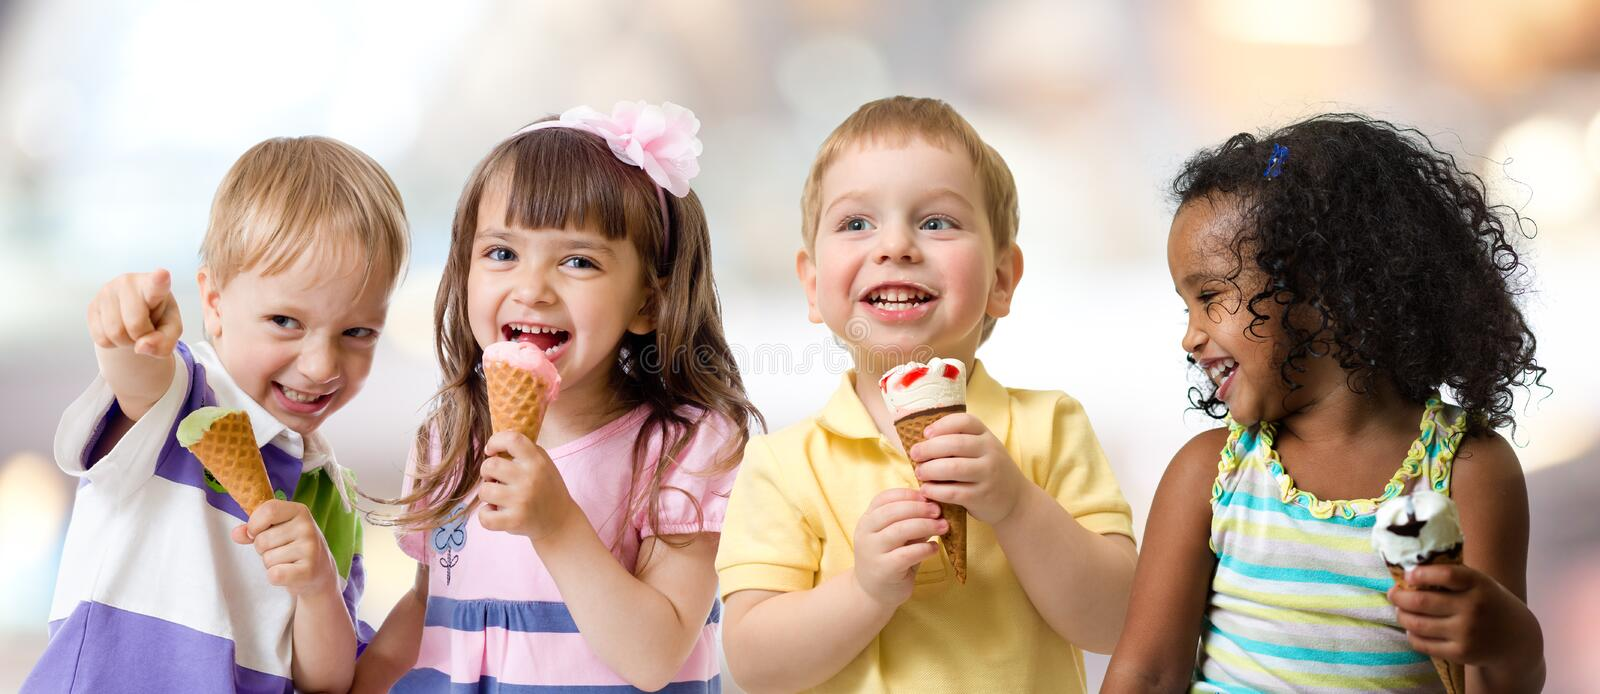 Download Happy Kids Group Eating Ice Cream At A Party In Cafe Stock Photo - Image of eating, multiracial: 110854340